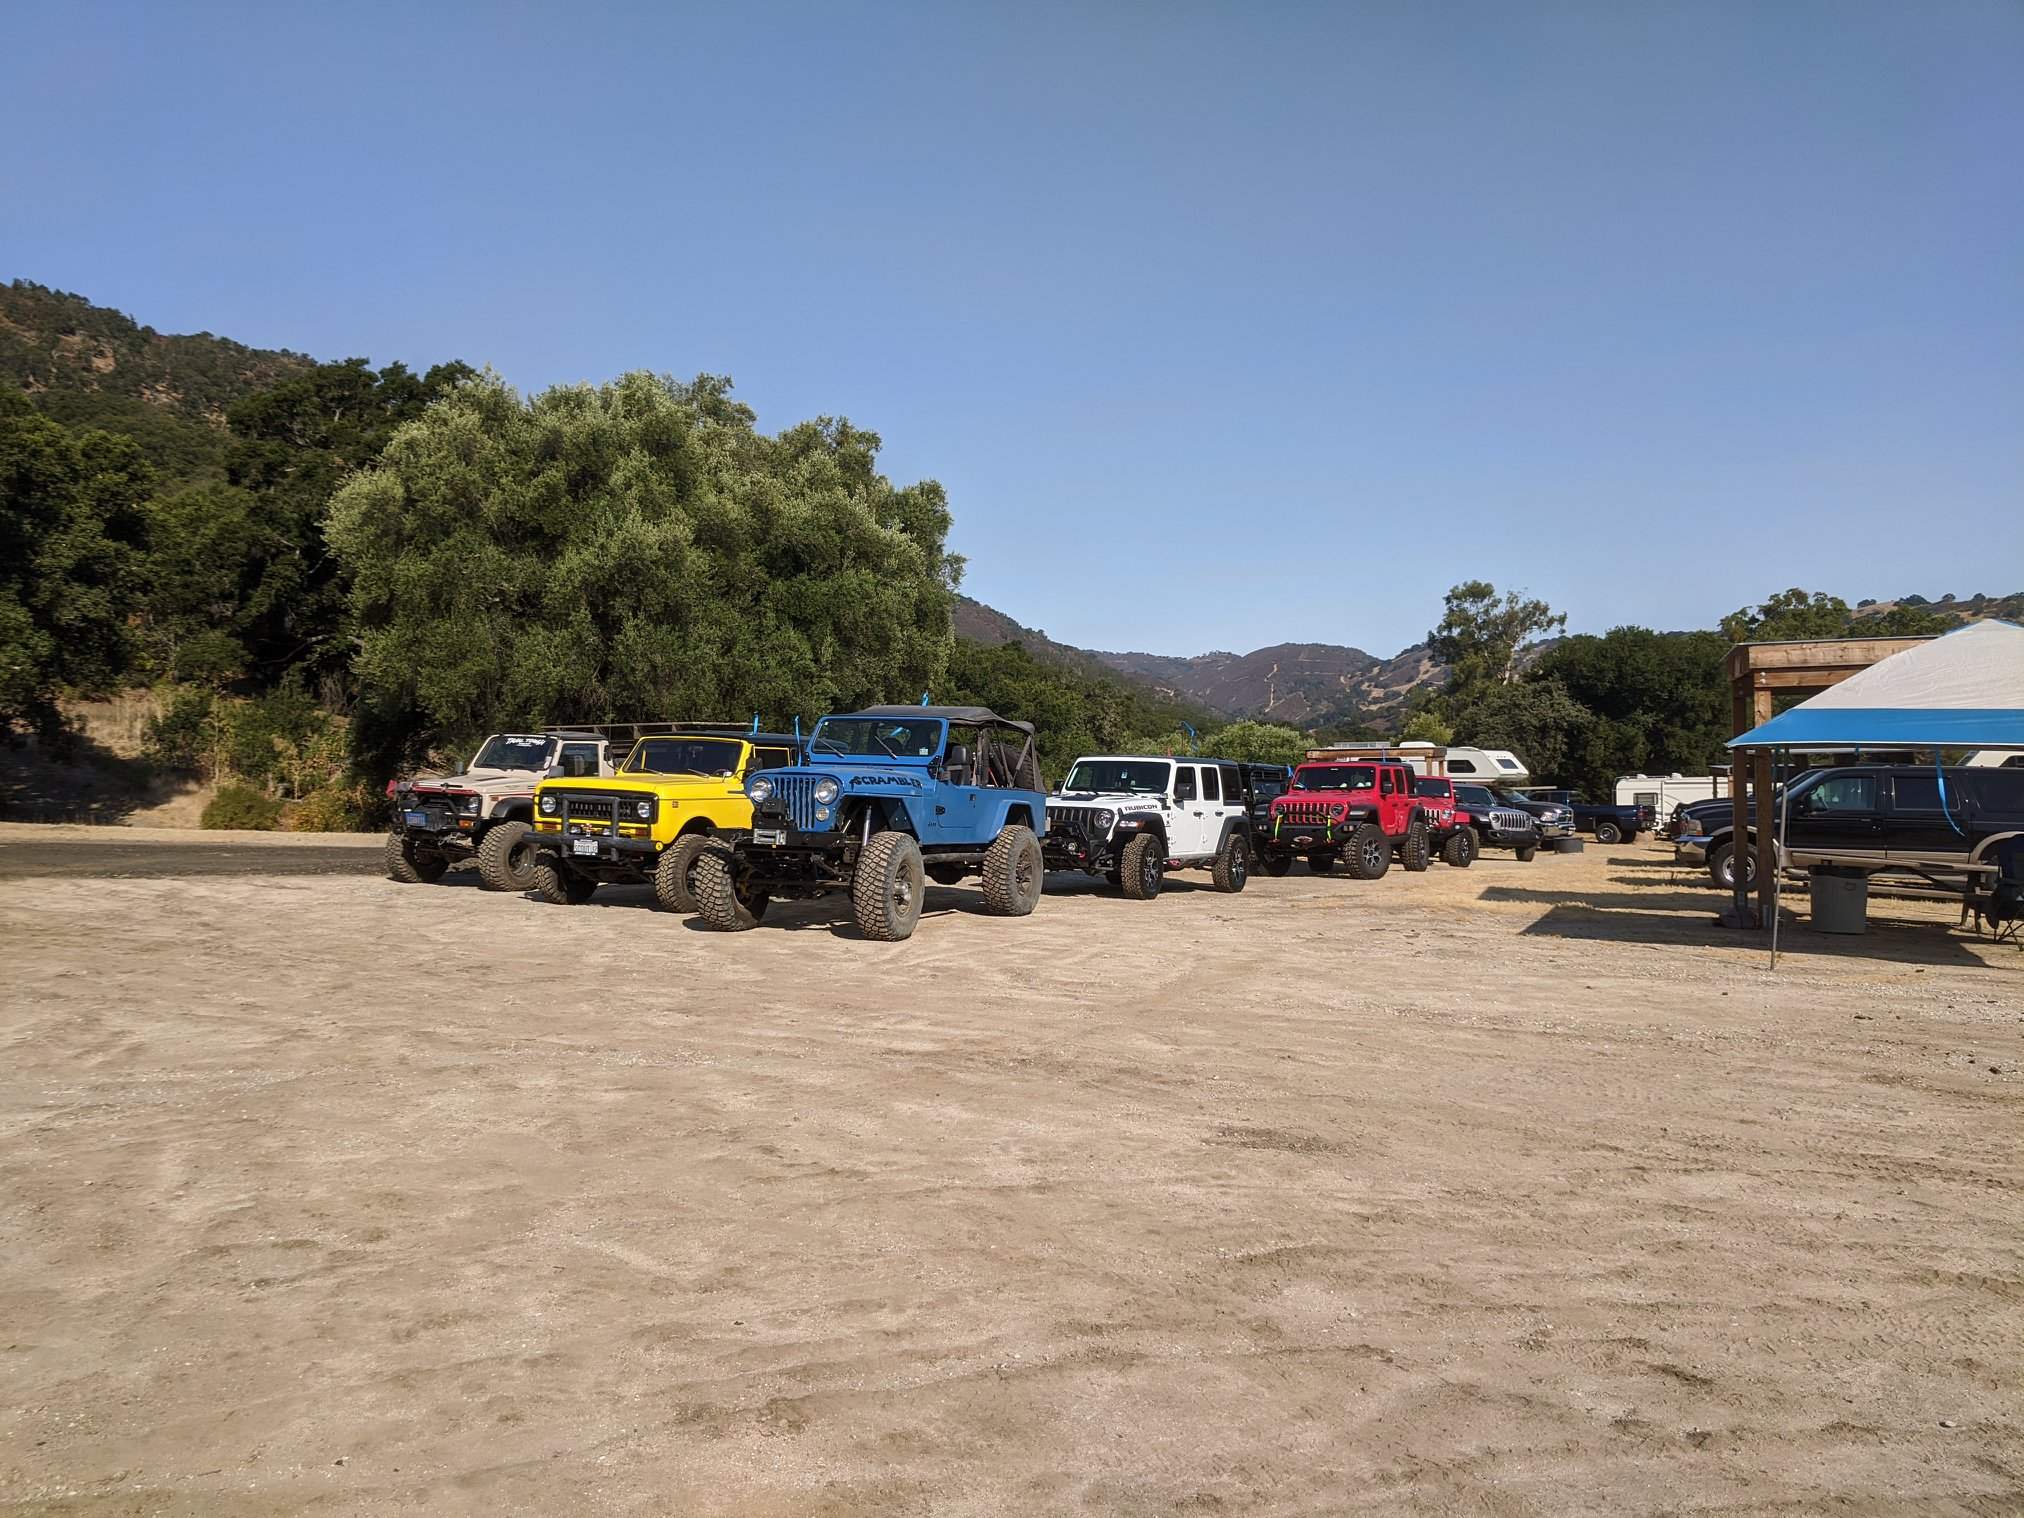 Episode 62: Covid Safety Clinic at Hollister Hills SVRA Wrap-Up